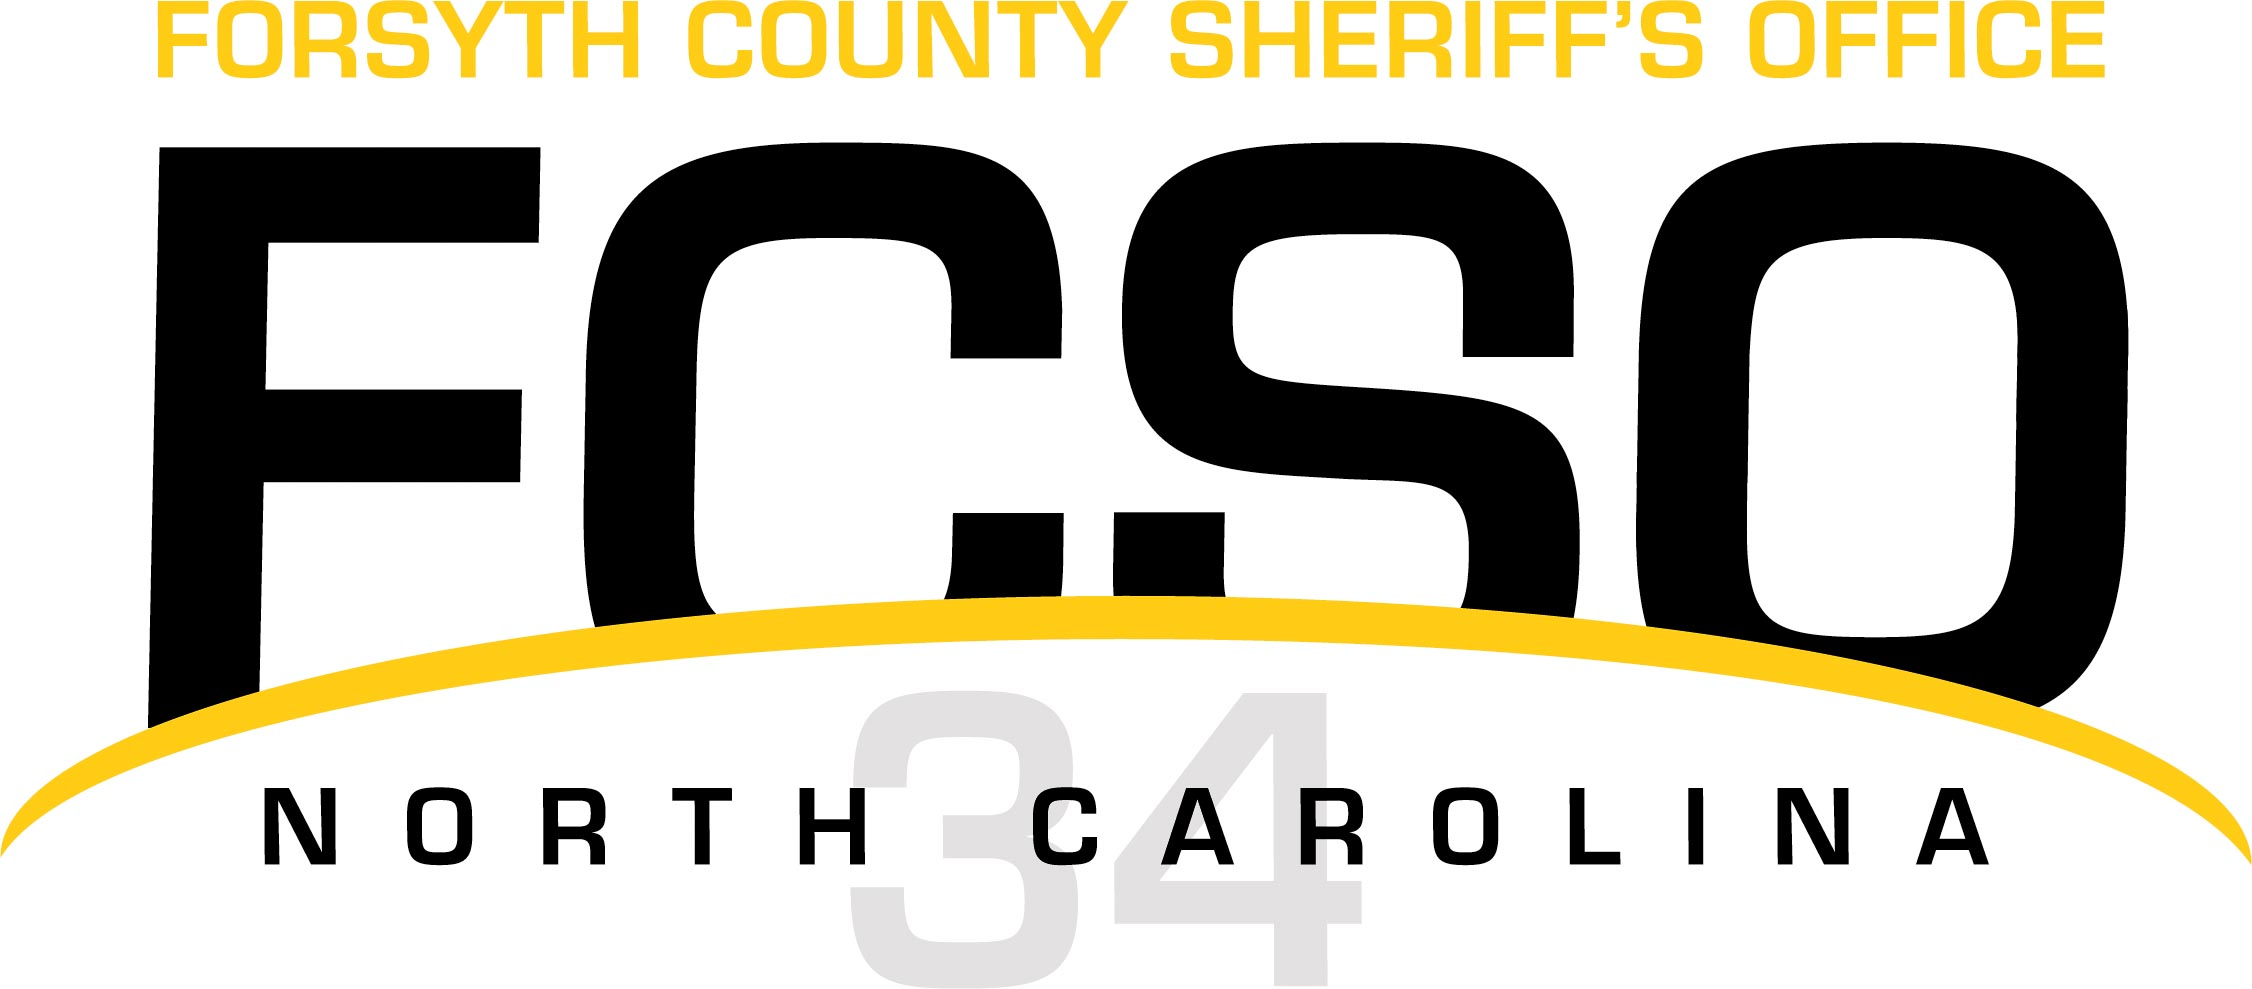 Forsyth County Sheriff's Office Recruitment